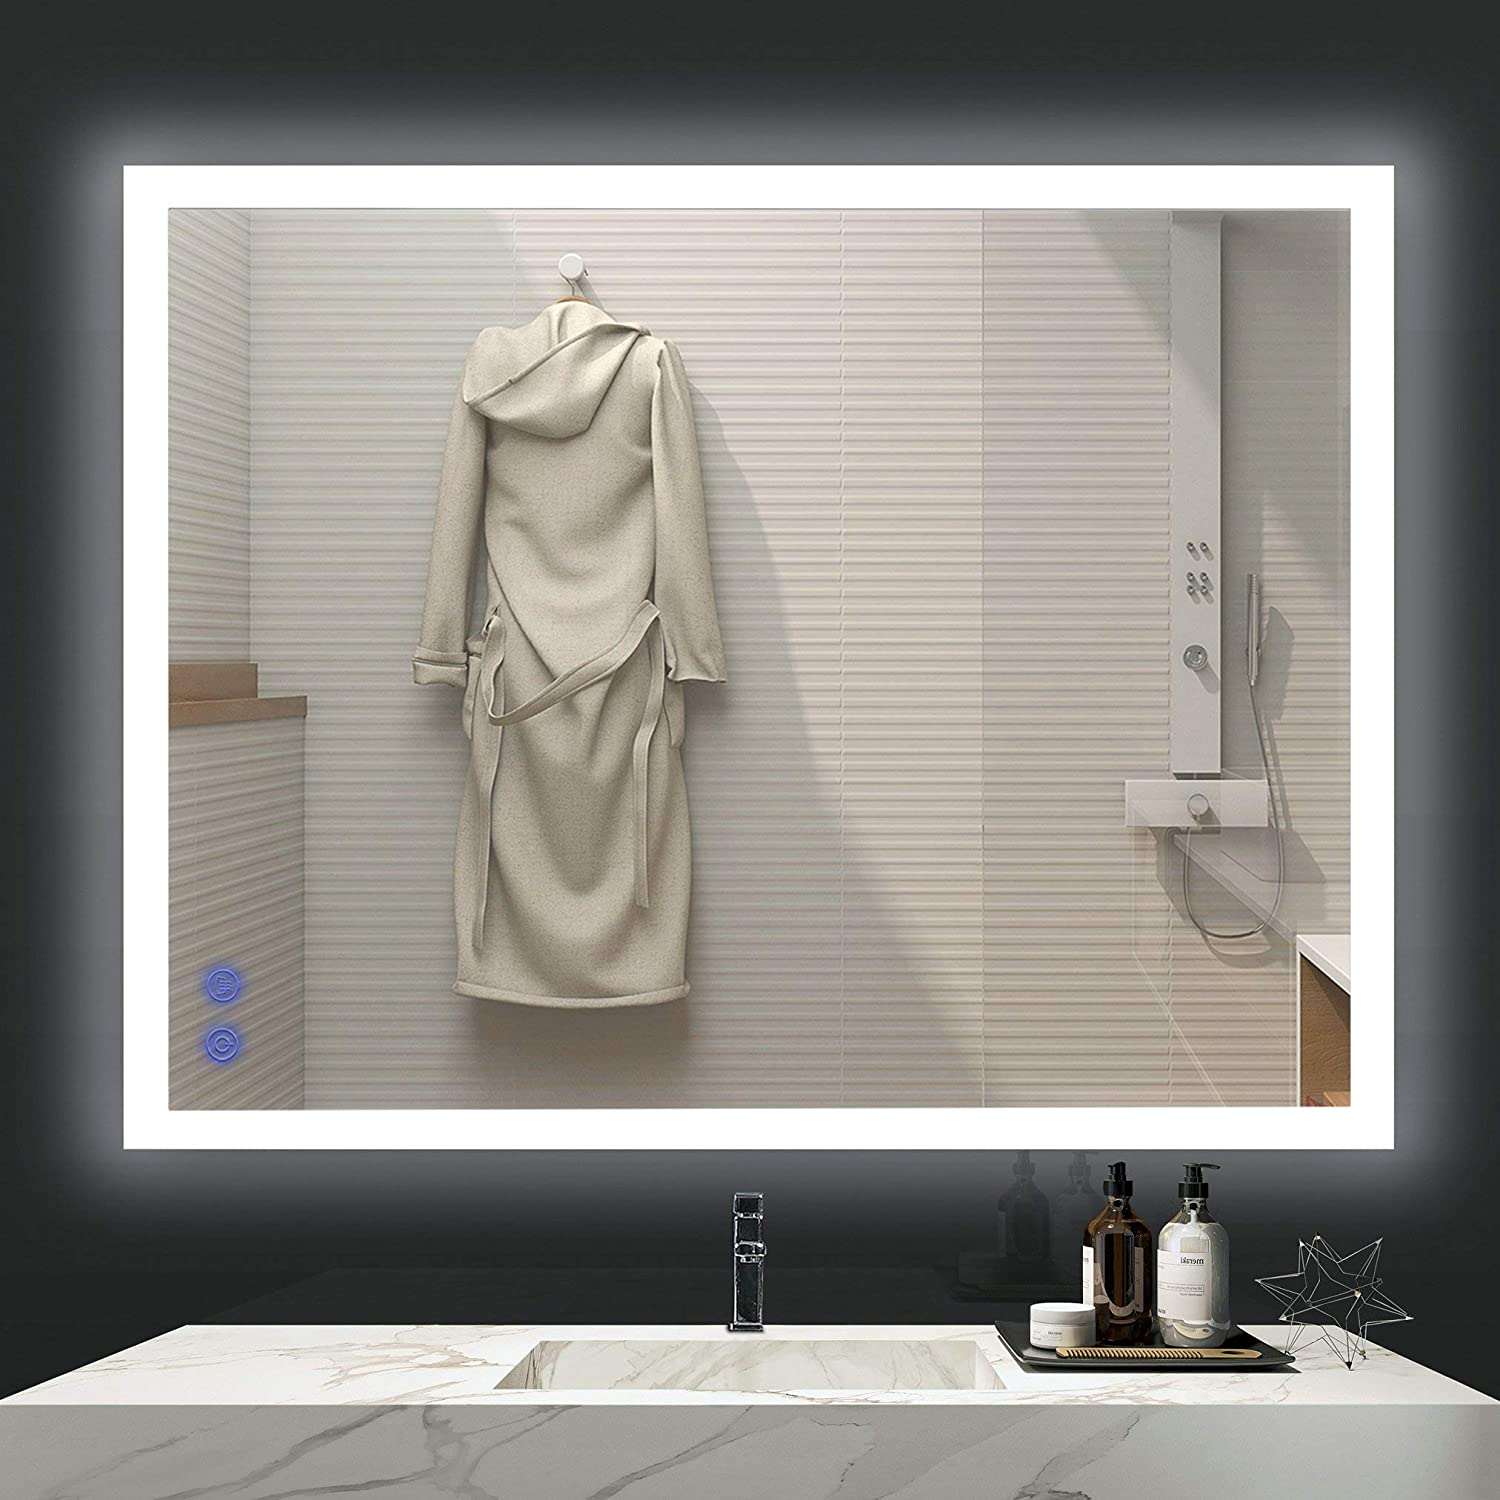 Amazon Com Venetio 36 X 28 Inch Led Lighted Mirror For Bathroom Vanity Wall Mounted Frameless Makeup Mirror Backlit Design With Adjustable Daylights And Memory Touch Button Anti Fog And Waterproof Function Kitchen